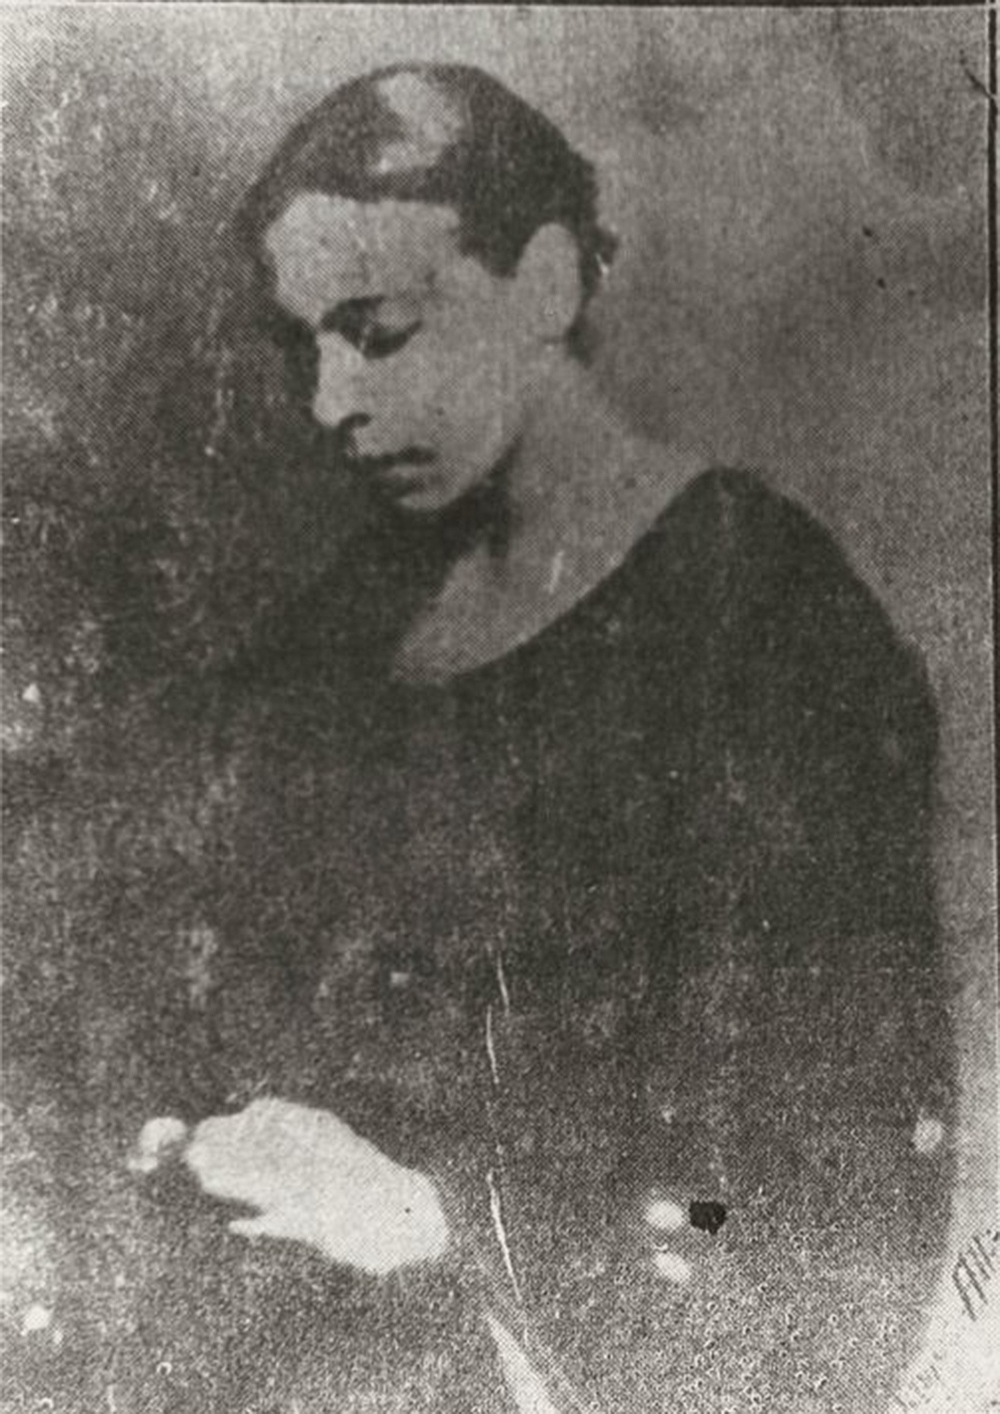 Nella Larsen. The New York Public Library, Schomburg Center for Research in Black Culture, Photographs and Prints Division.